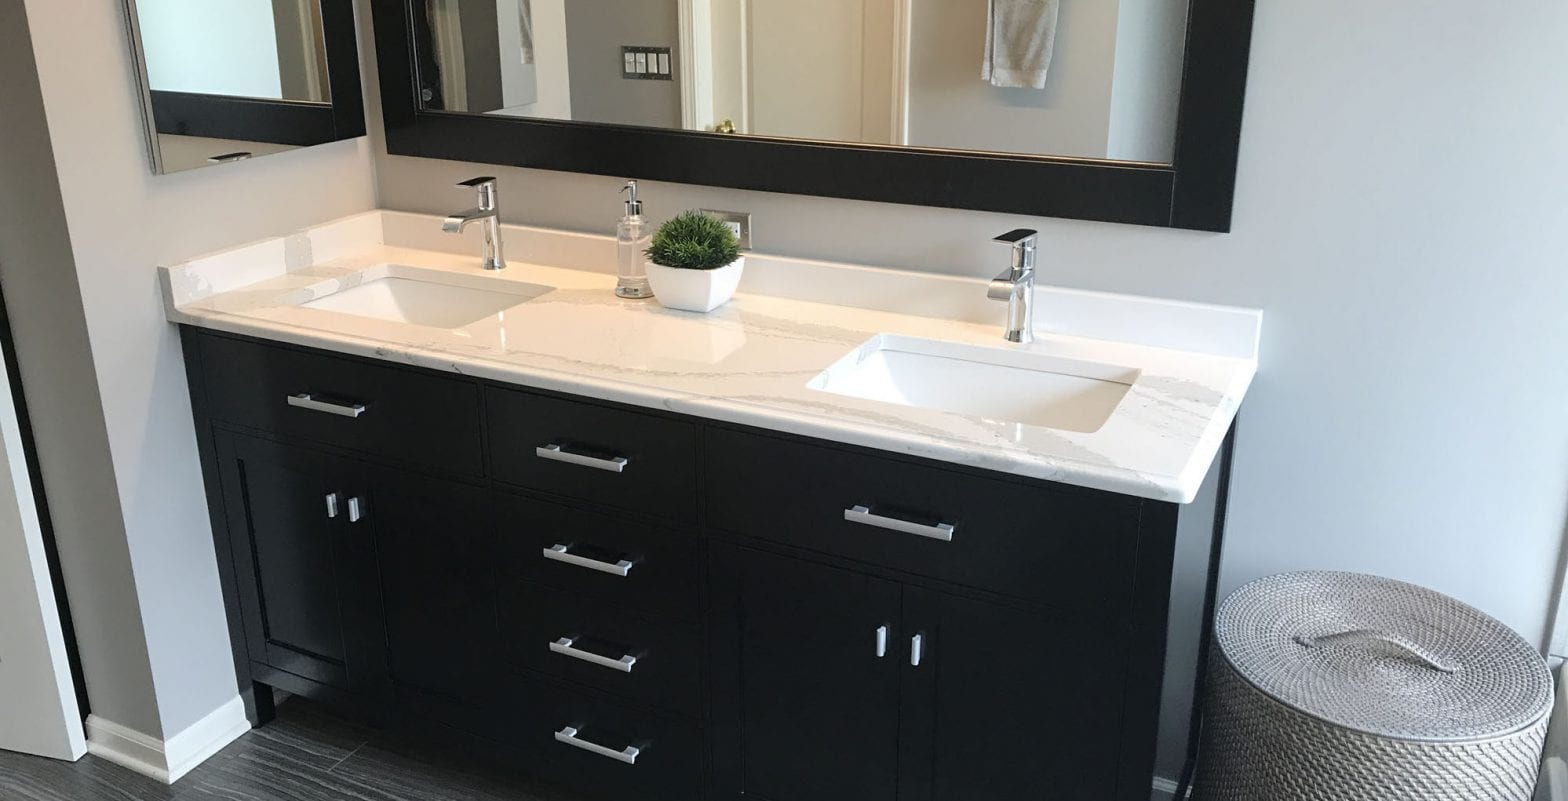 Bathroom Remodeling Hoffman Estates IL: Bathroom remodeling contractors Hoffman Estates